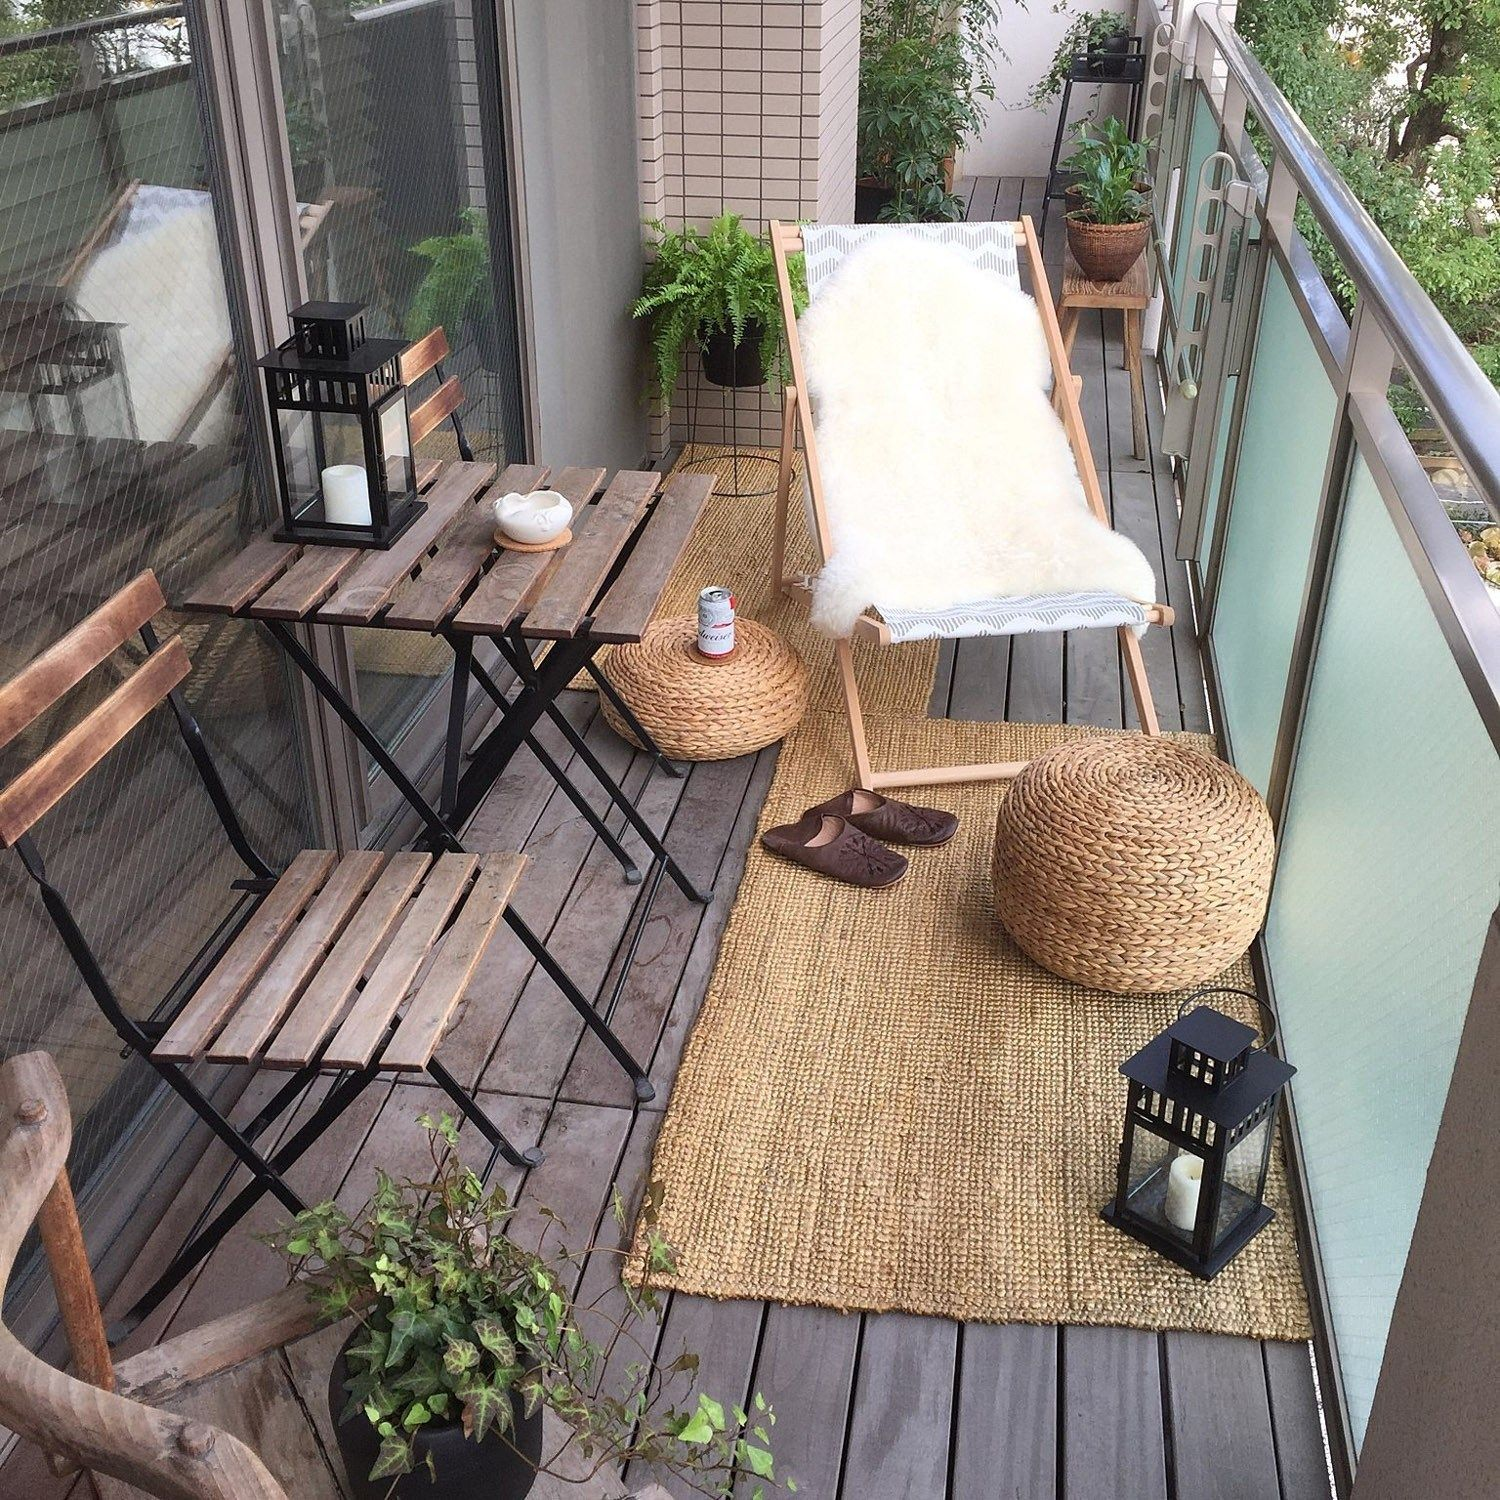 34+ Small Apartment Patio Decor Tiny Balcony Outdoor Spaces: No Longer a Mystery - homeknicknack #outdoorbalcony